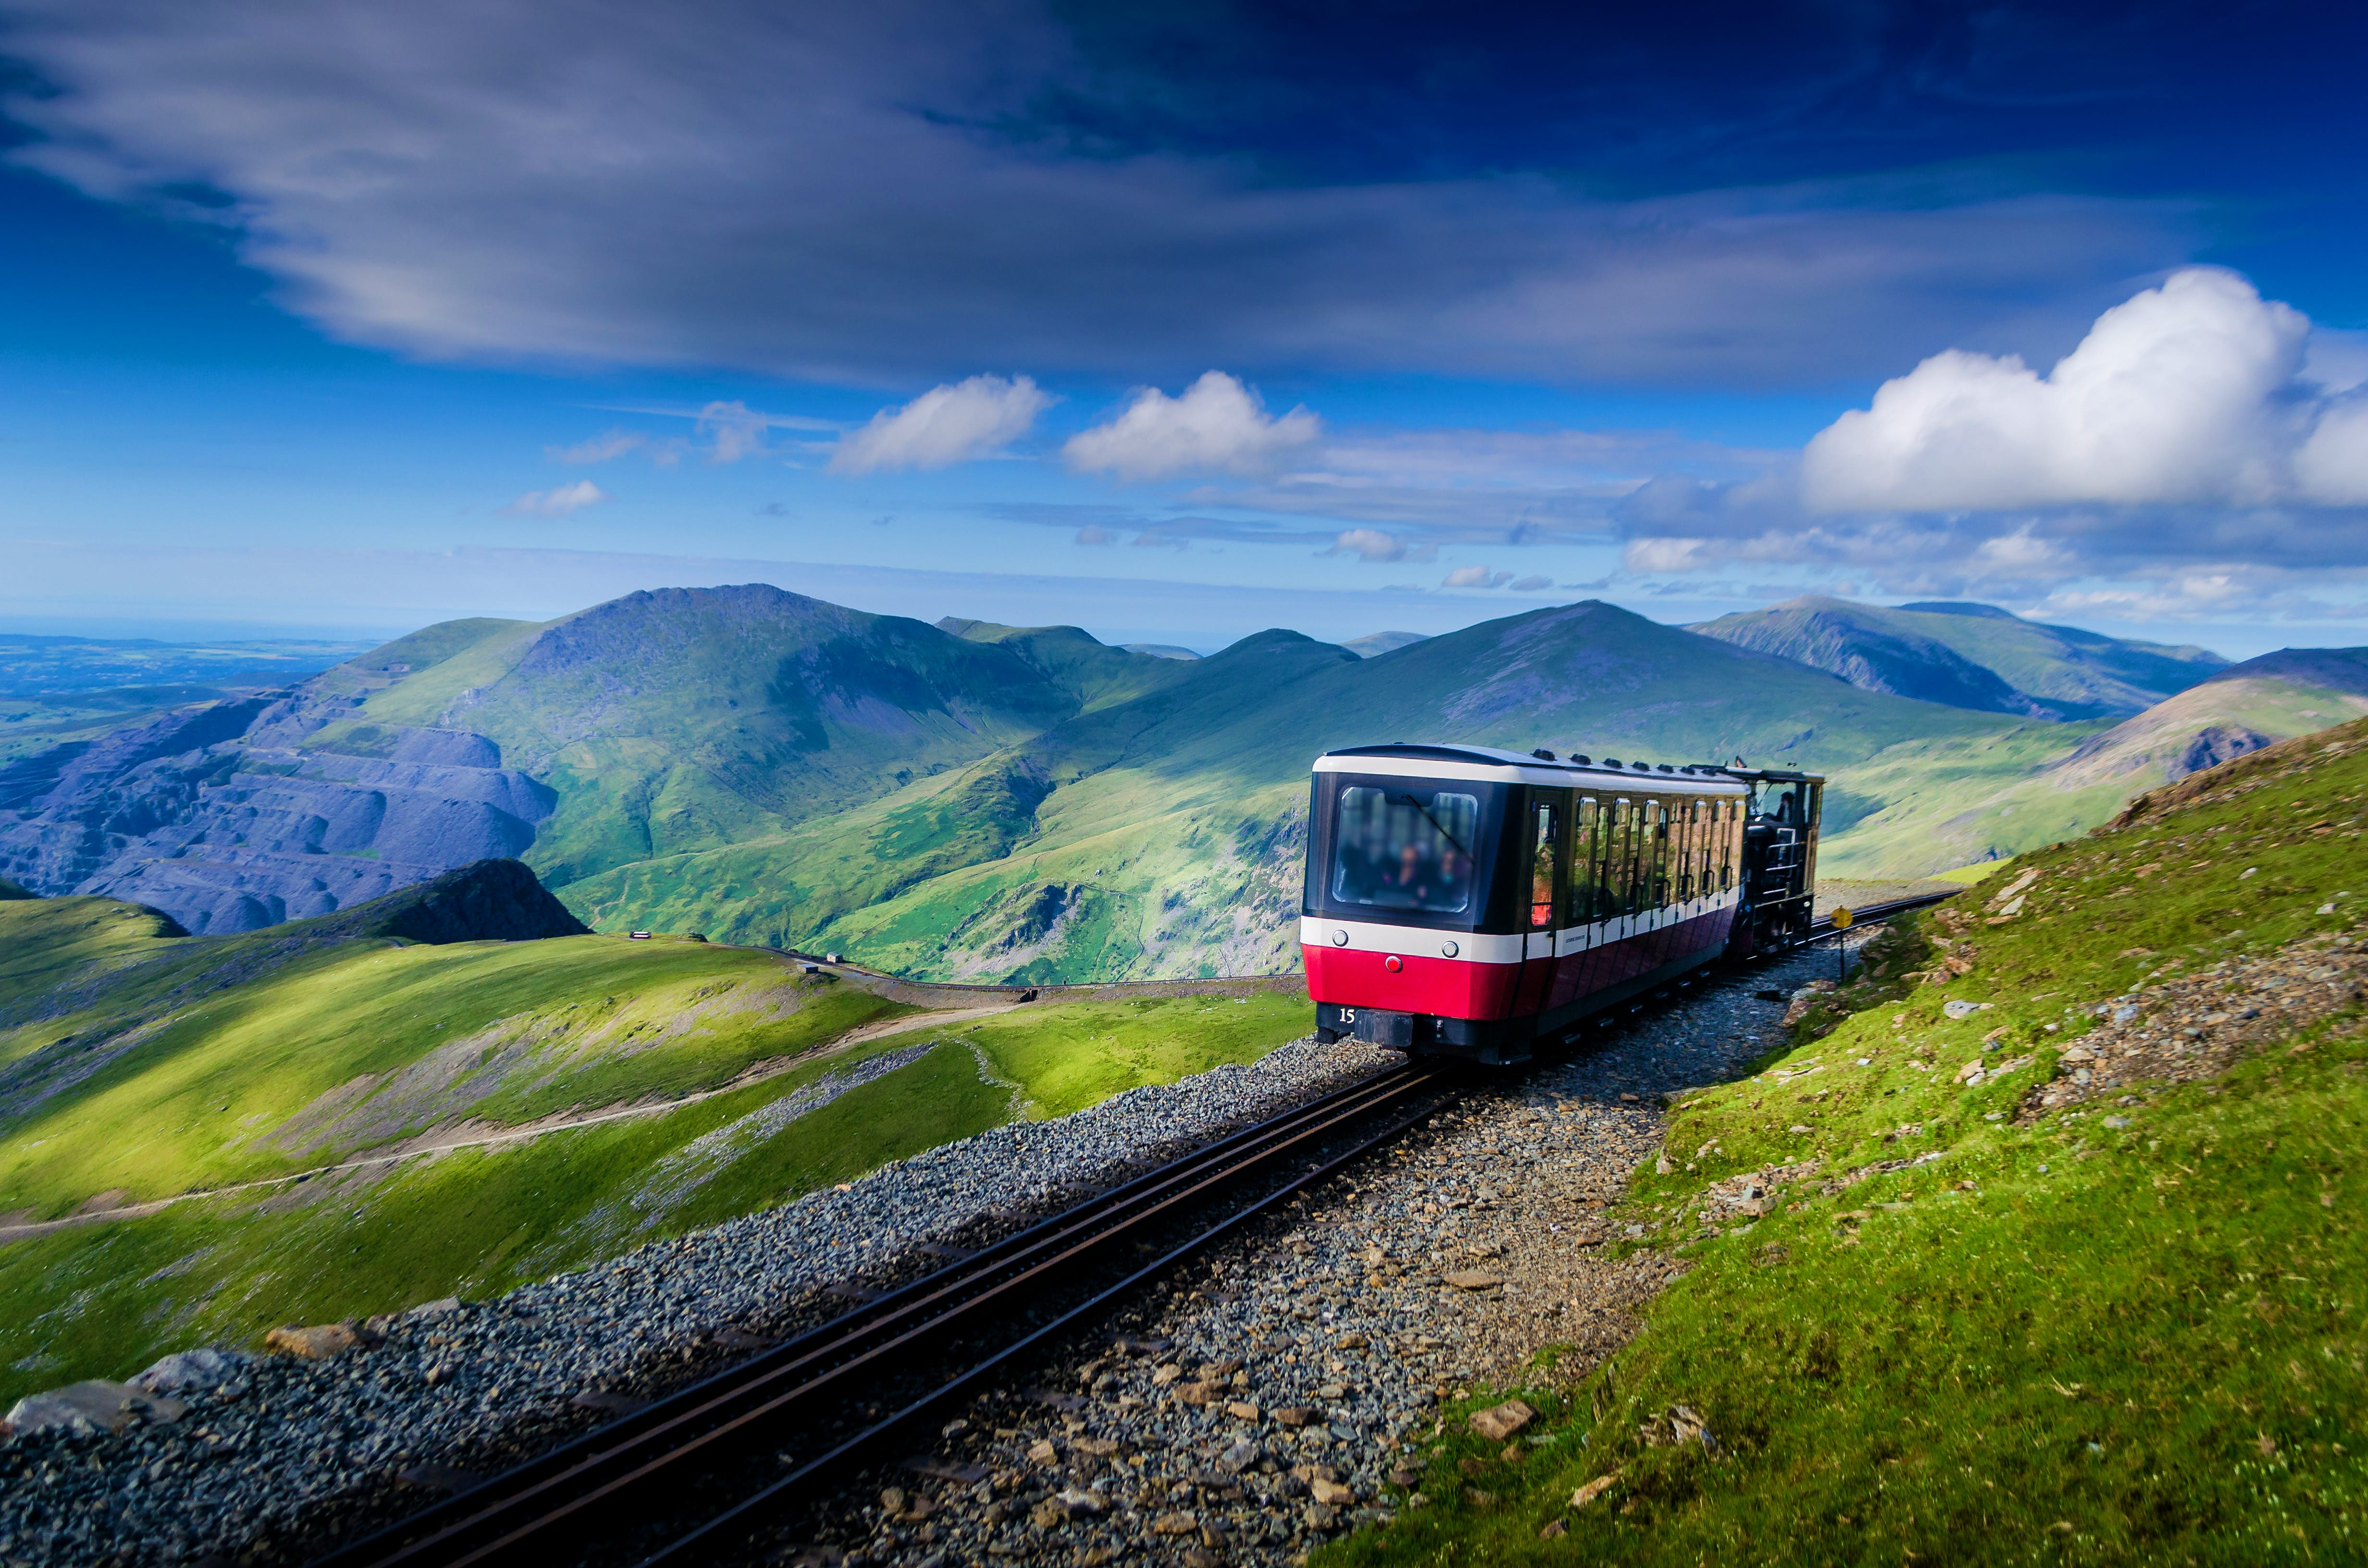 A small red, narrow-guage tourist train rides the rails towards Snowdon in Snowdonia National Park, as sun bathes the green peaks of the range.